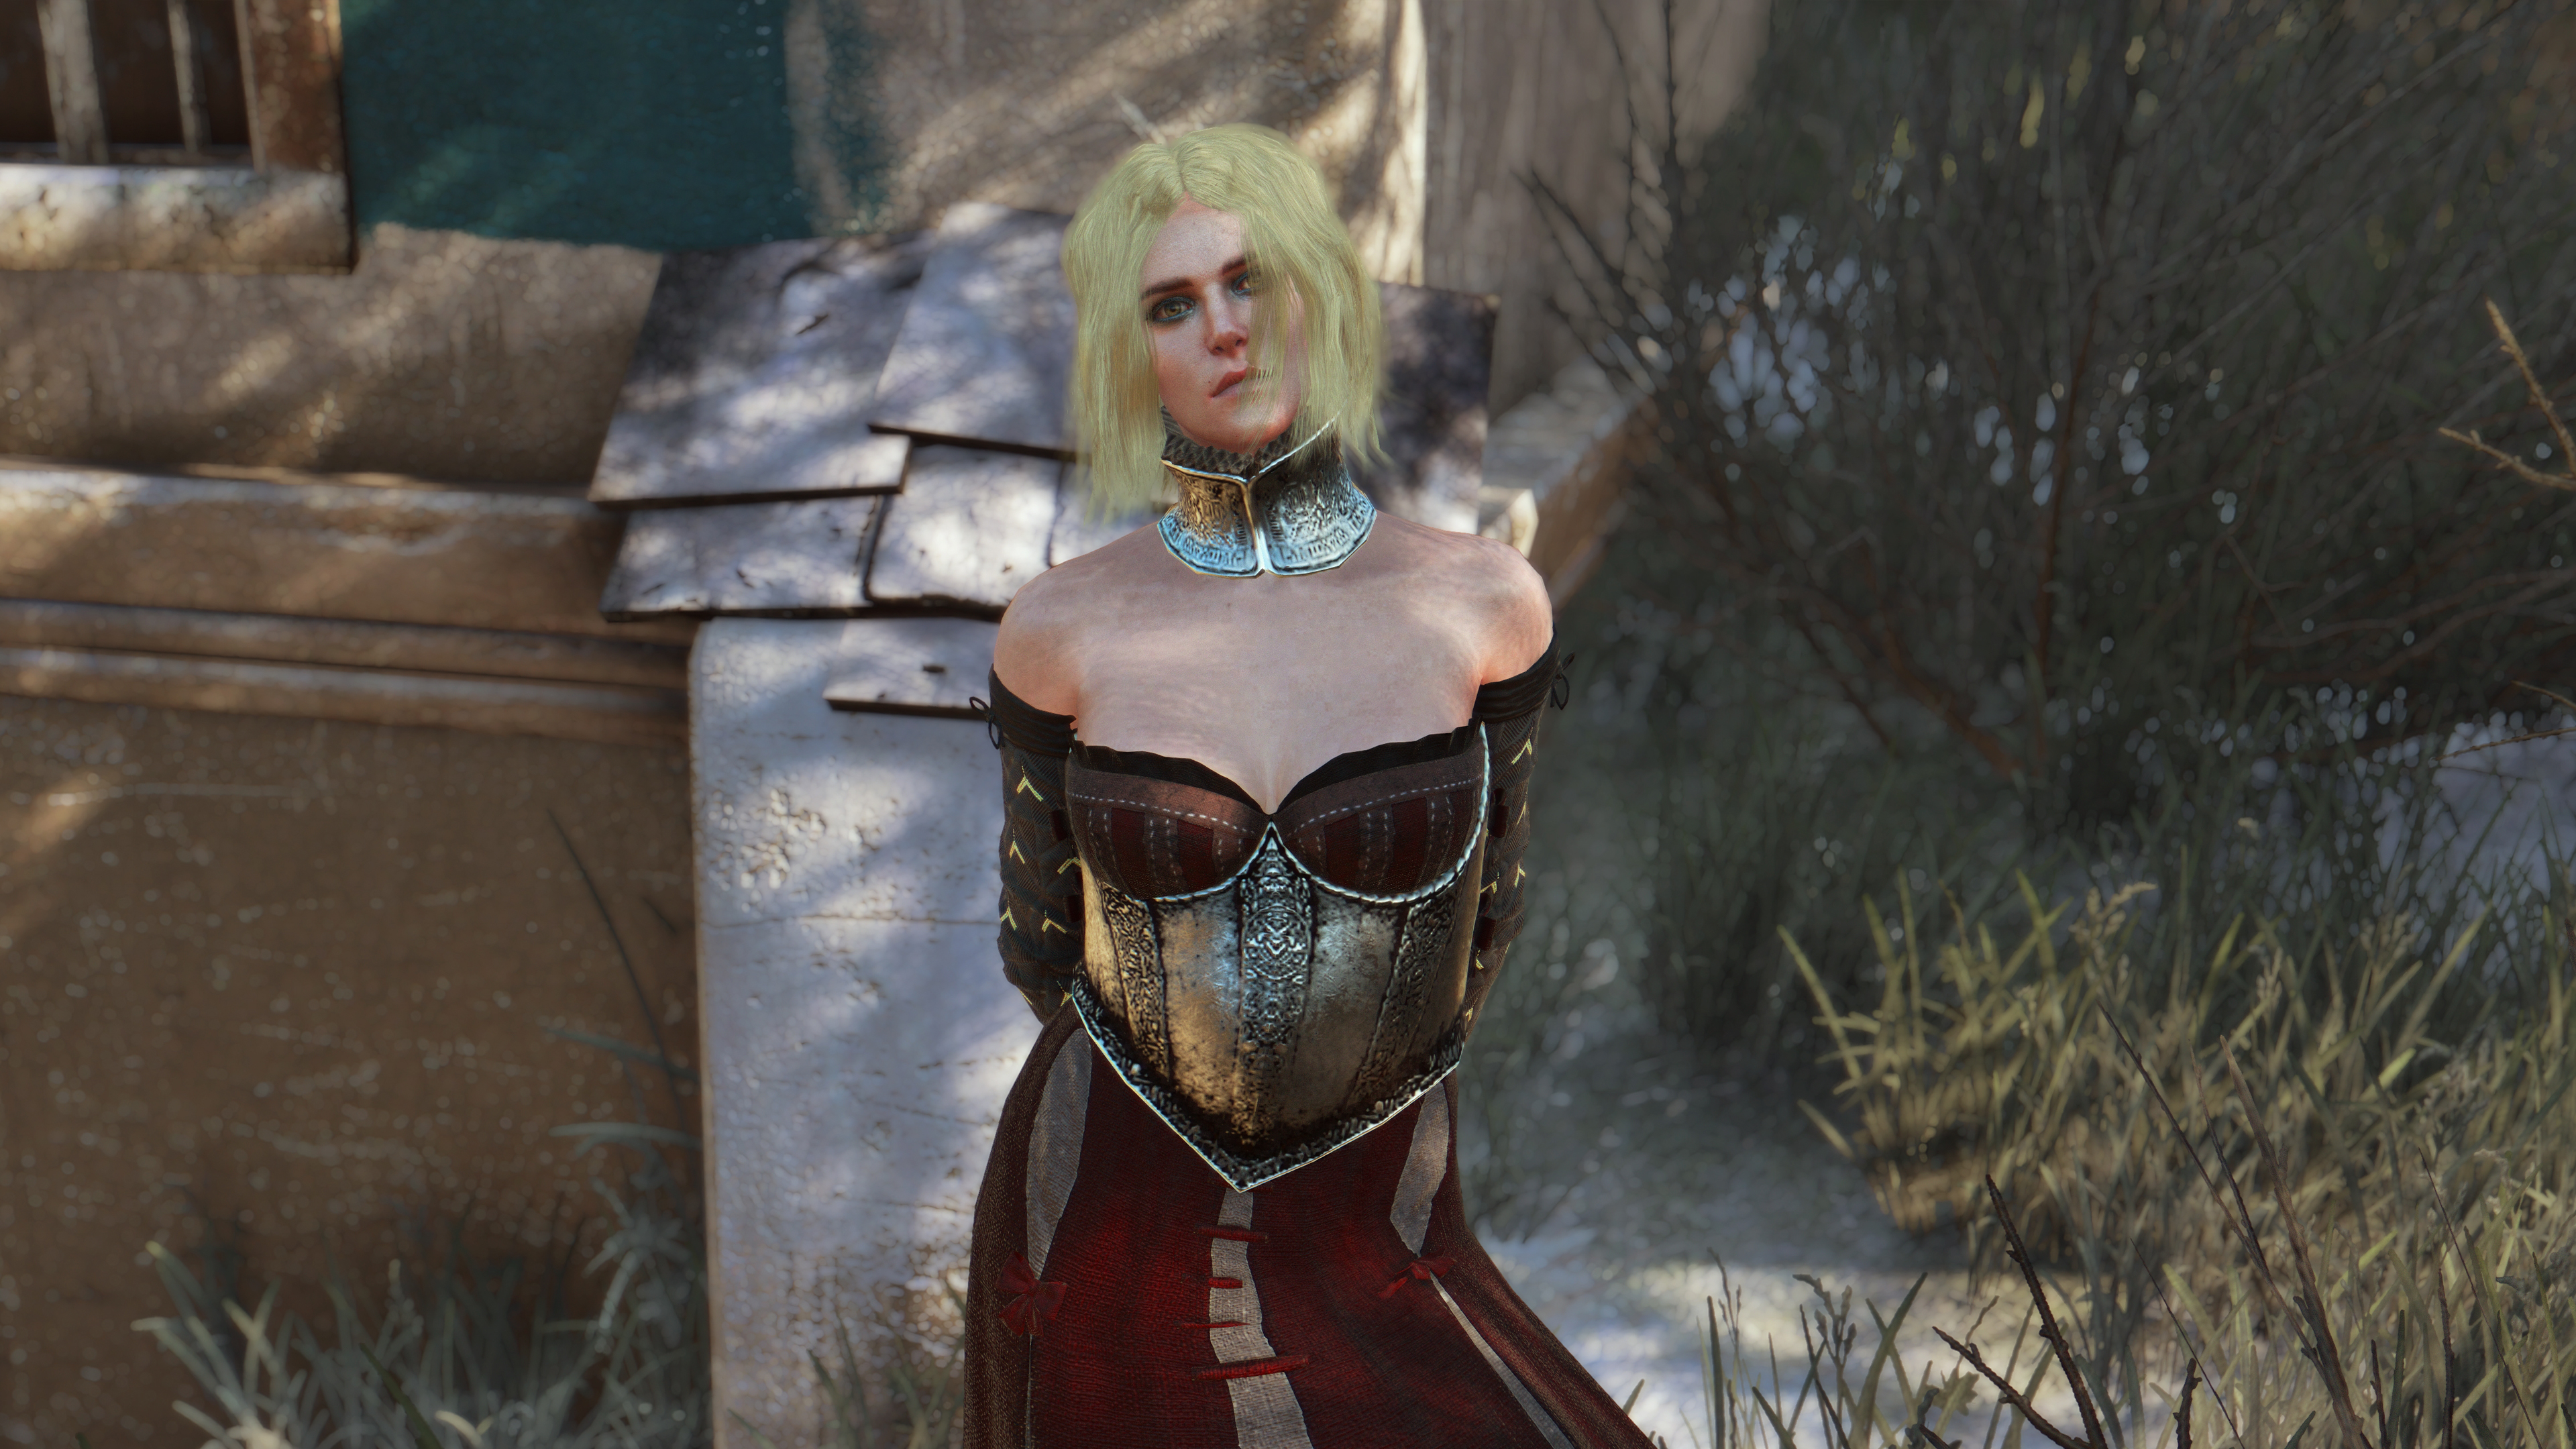 Tweaks for Keira Mod - The Witcher 3: Wild Hunt Mods